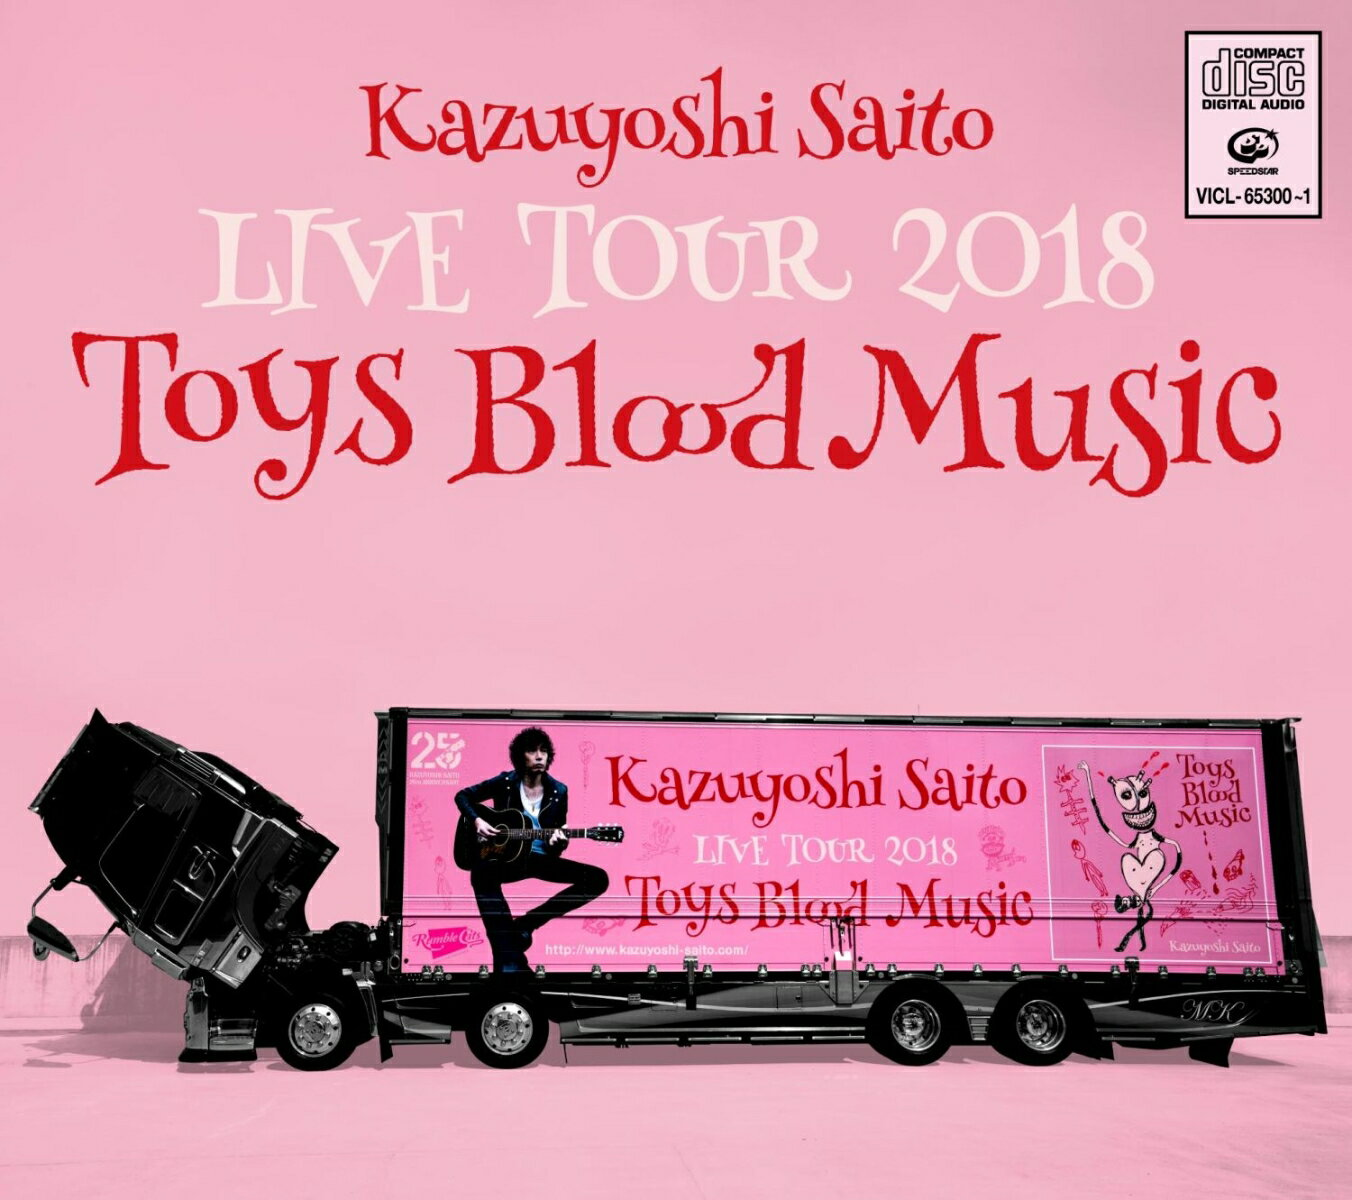 KAZUYOSHI SAITO LIVE TOUR 2018 Toys Blood Music Live at 山梨コラニー文化ホール 2018.6.2画像